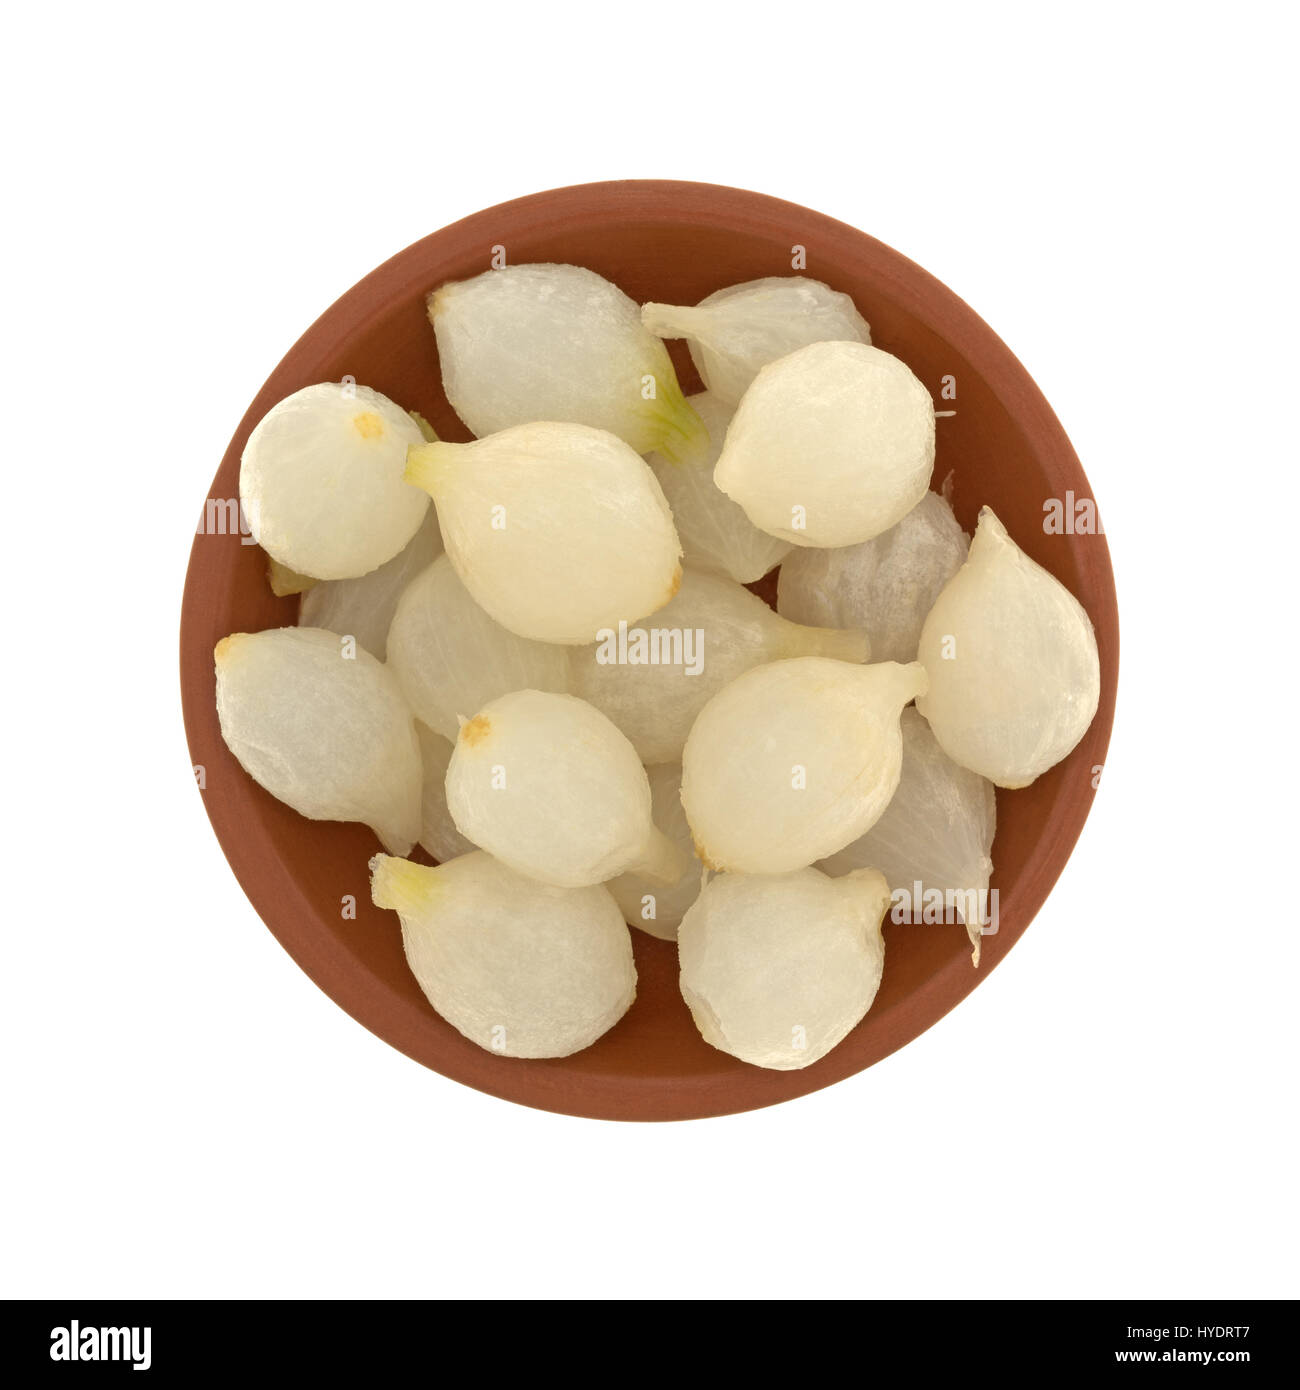 Top view of a small clay bowl filled with cooked pearl onions isolated on a white background. - Stock Image